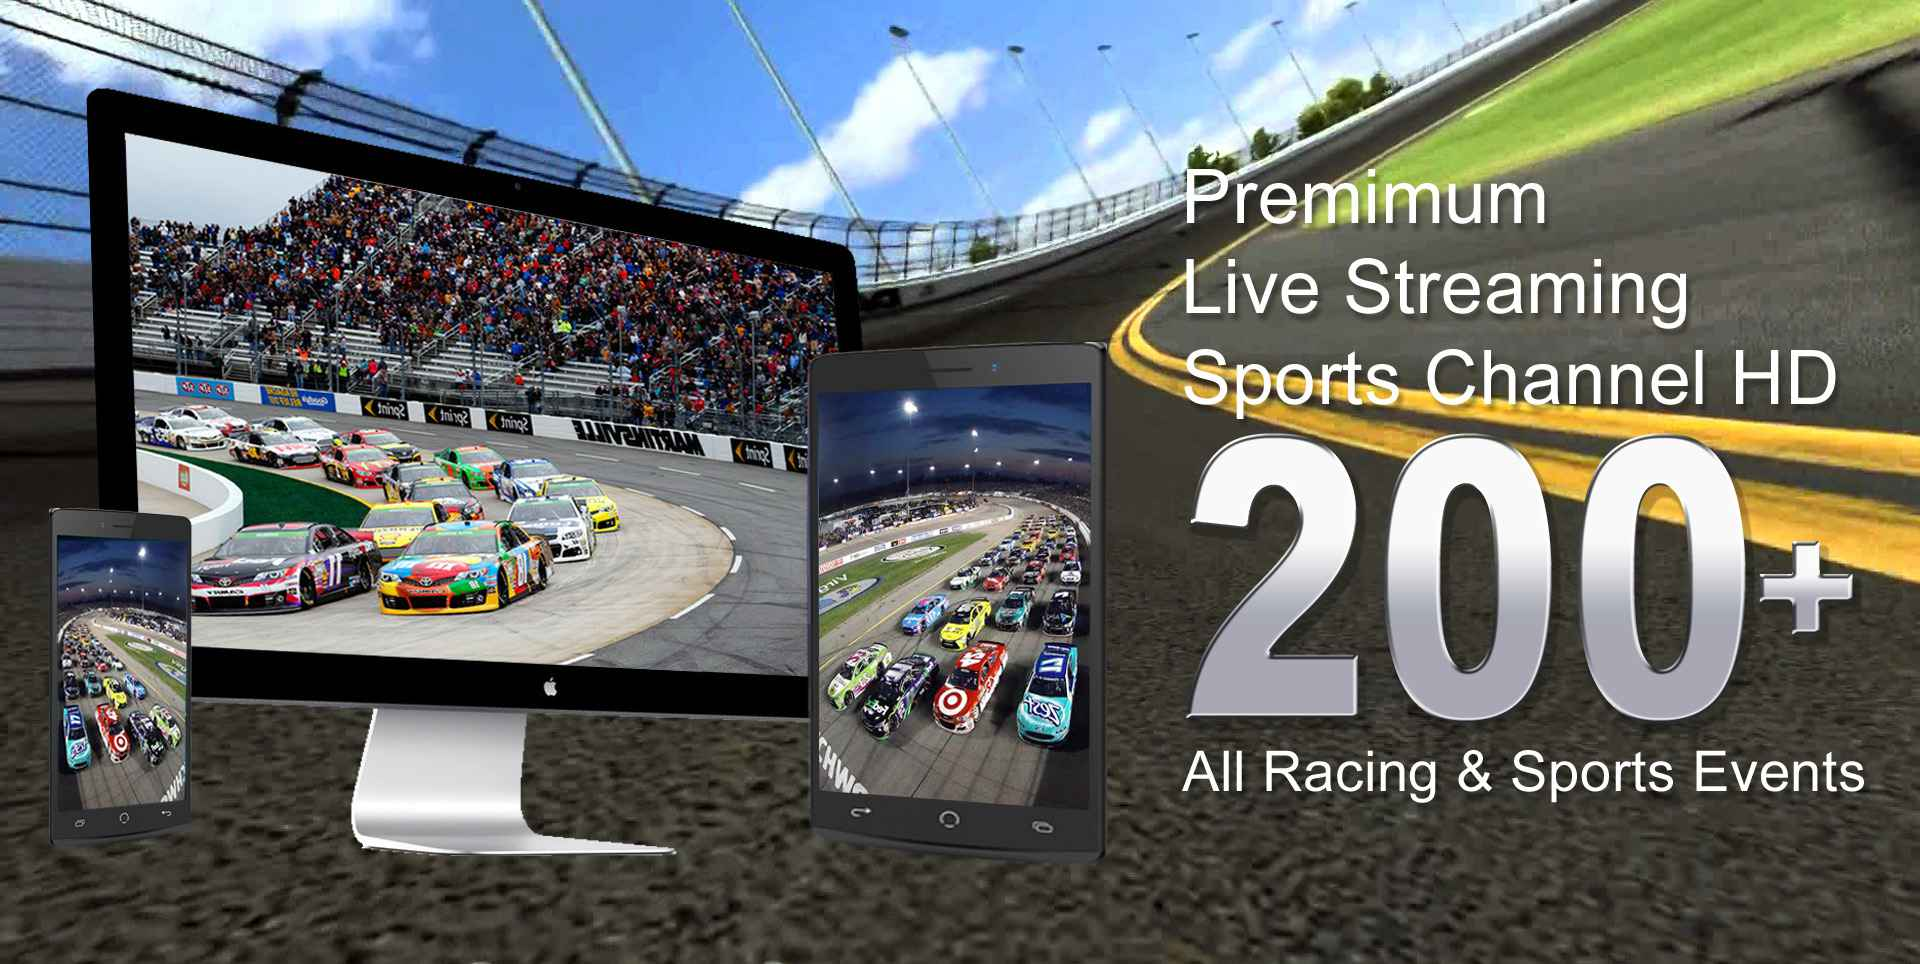 Nascar Race Pocono Mountains 150 Online